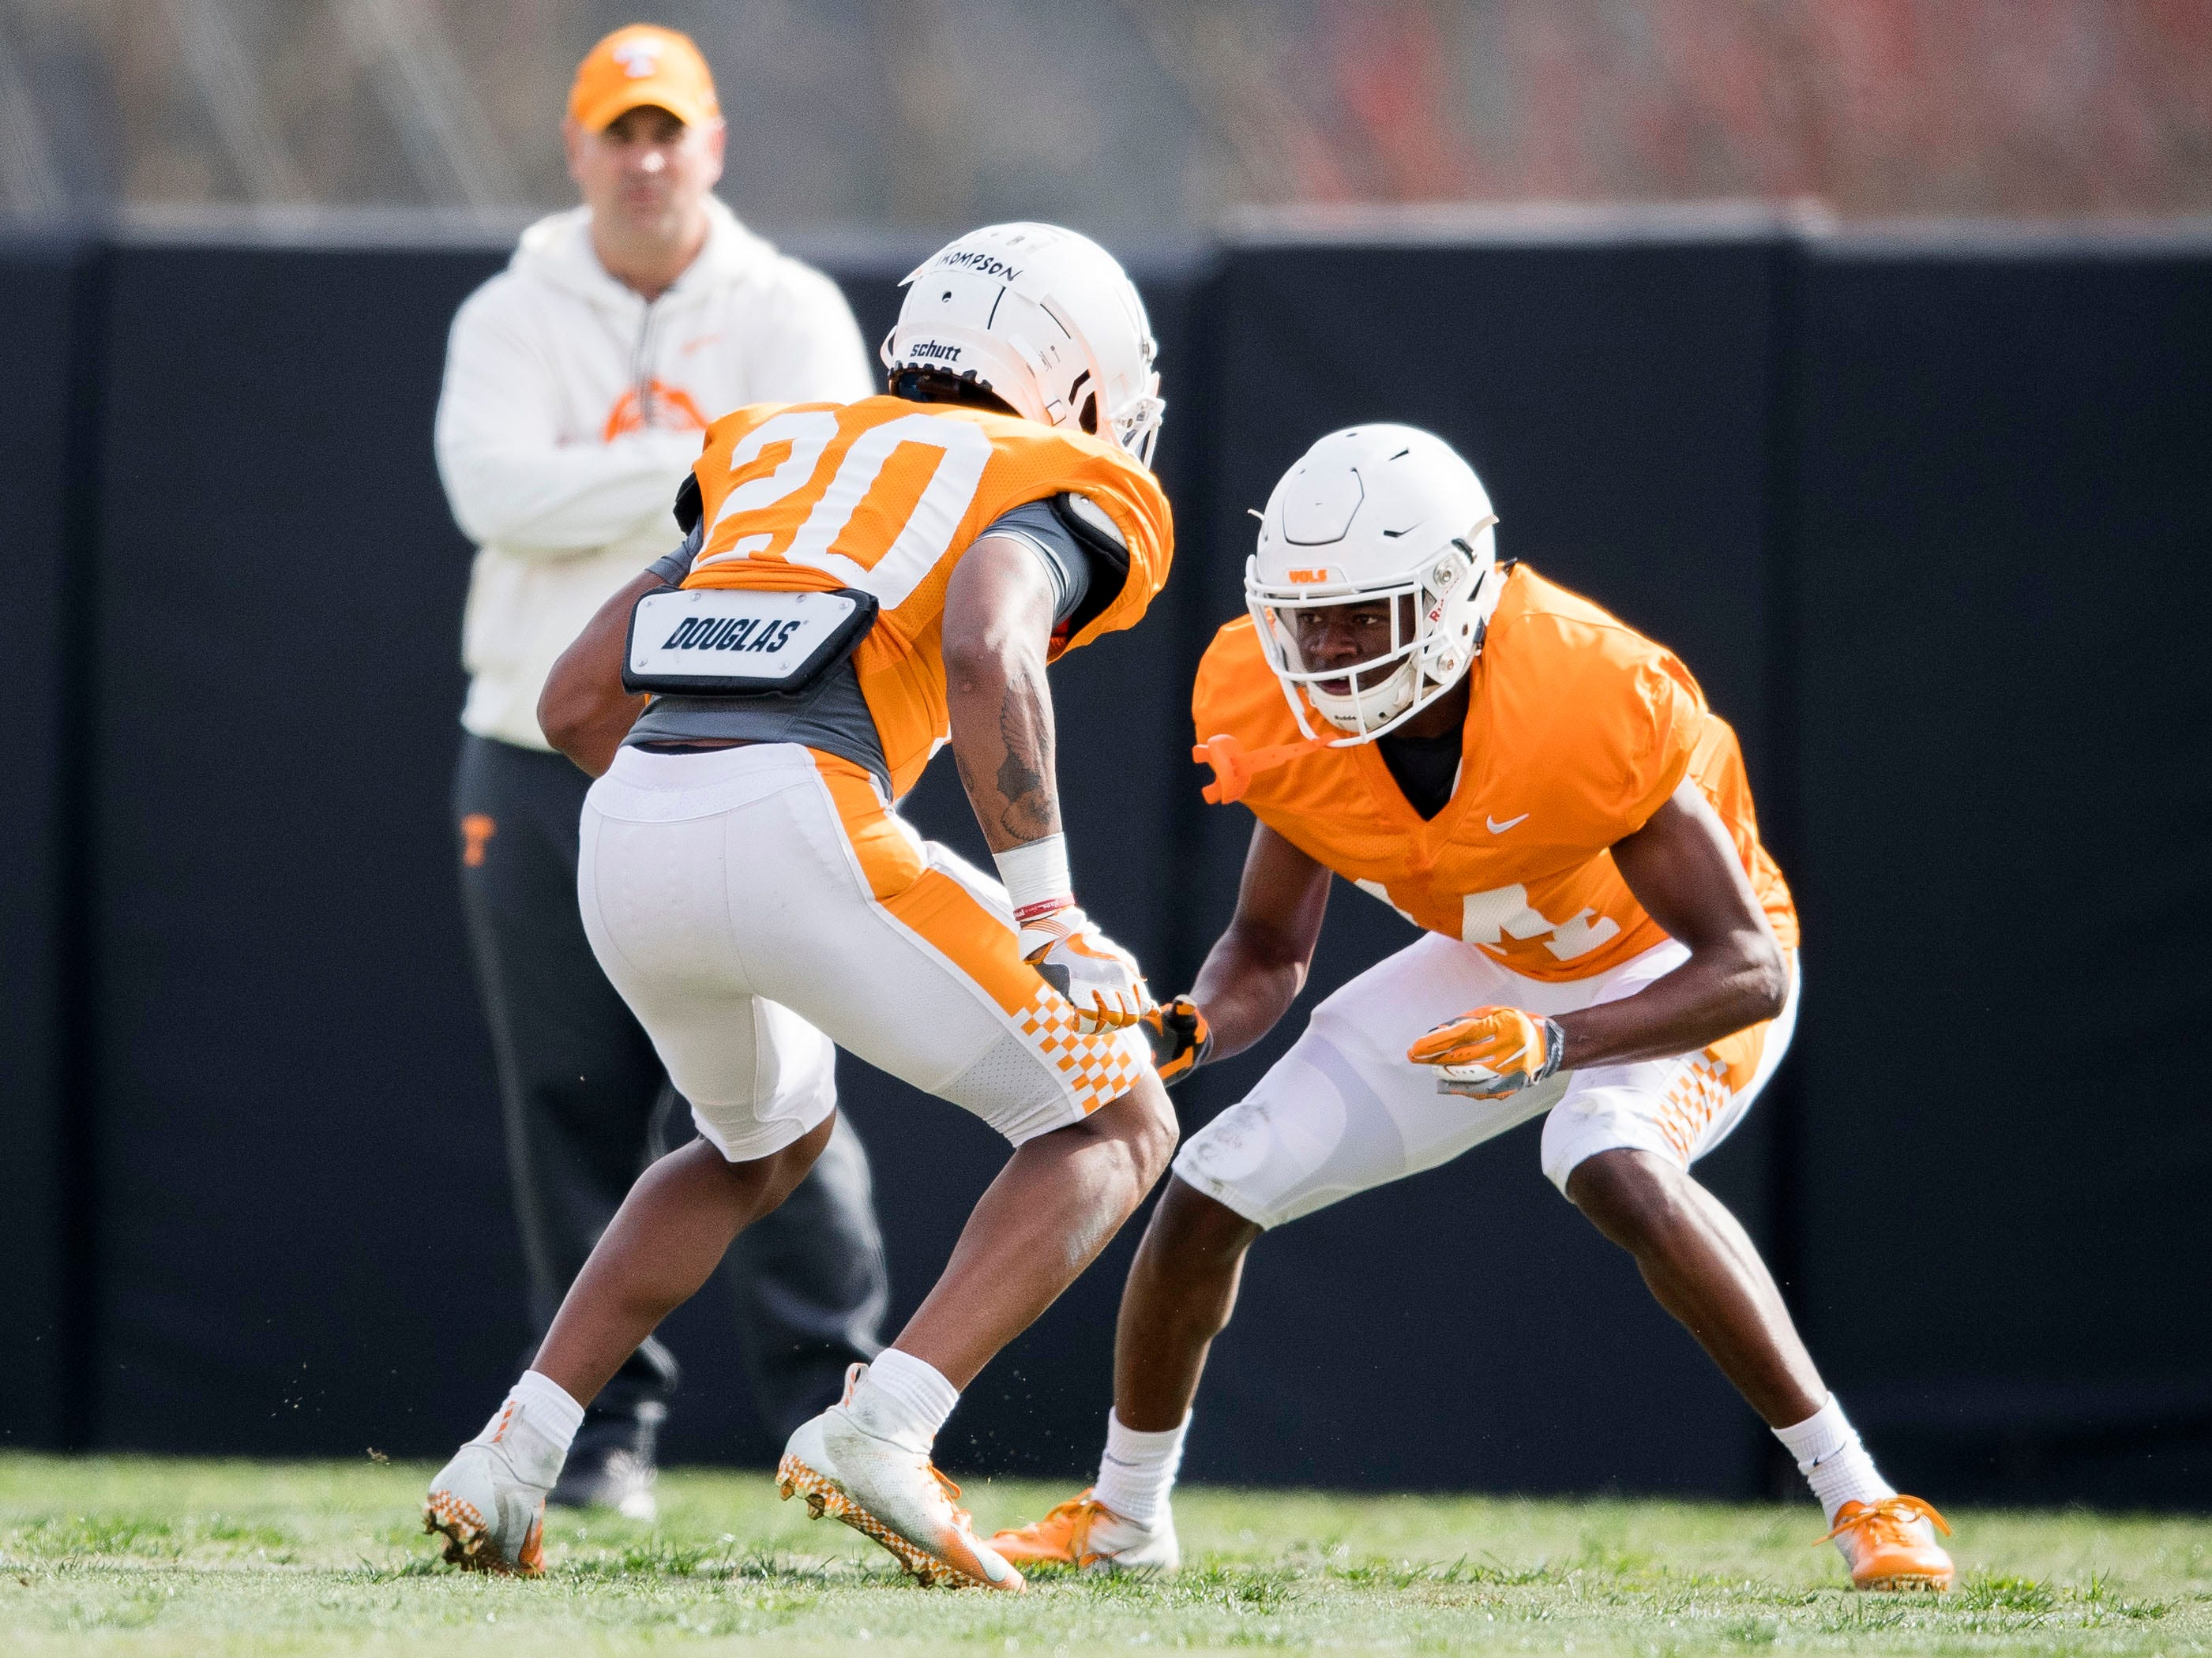 Tennessee defensive backs Bryce Thompson (20) and Warren Burrell (14) during Tennessee's afternoon football practice on Monday, March 11, 2019.